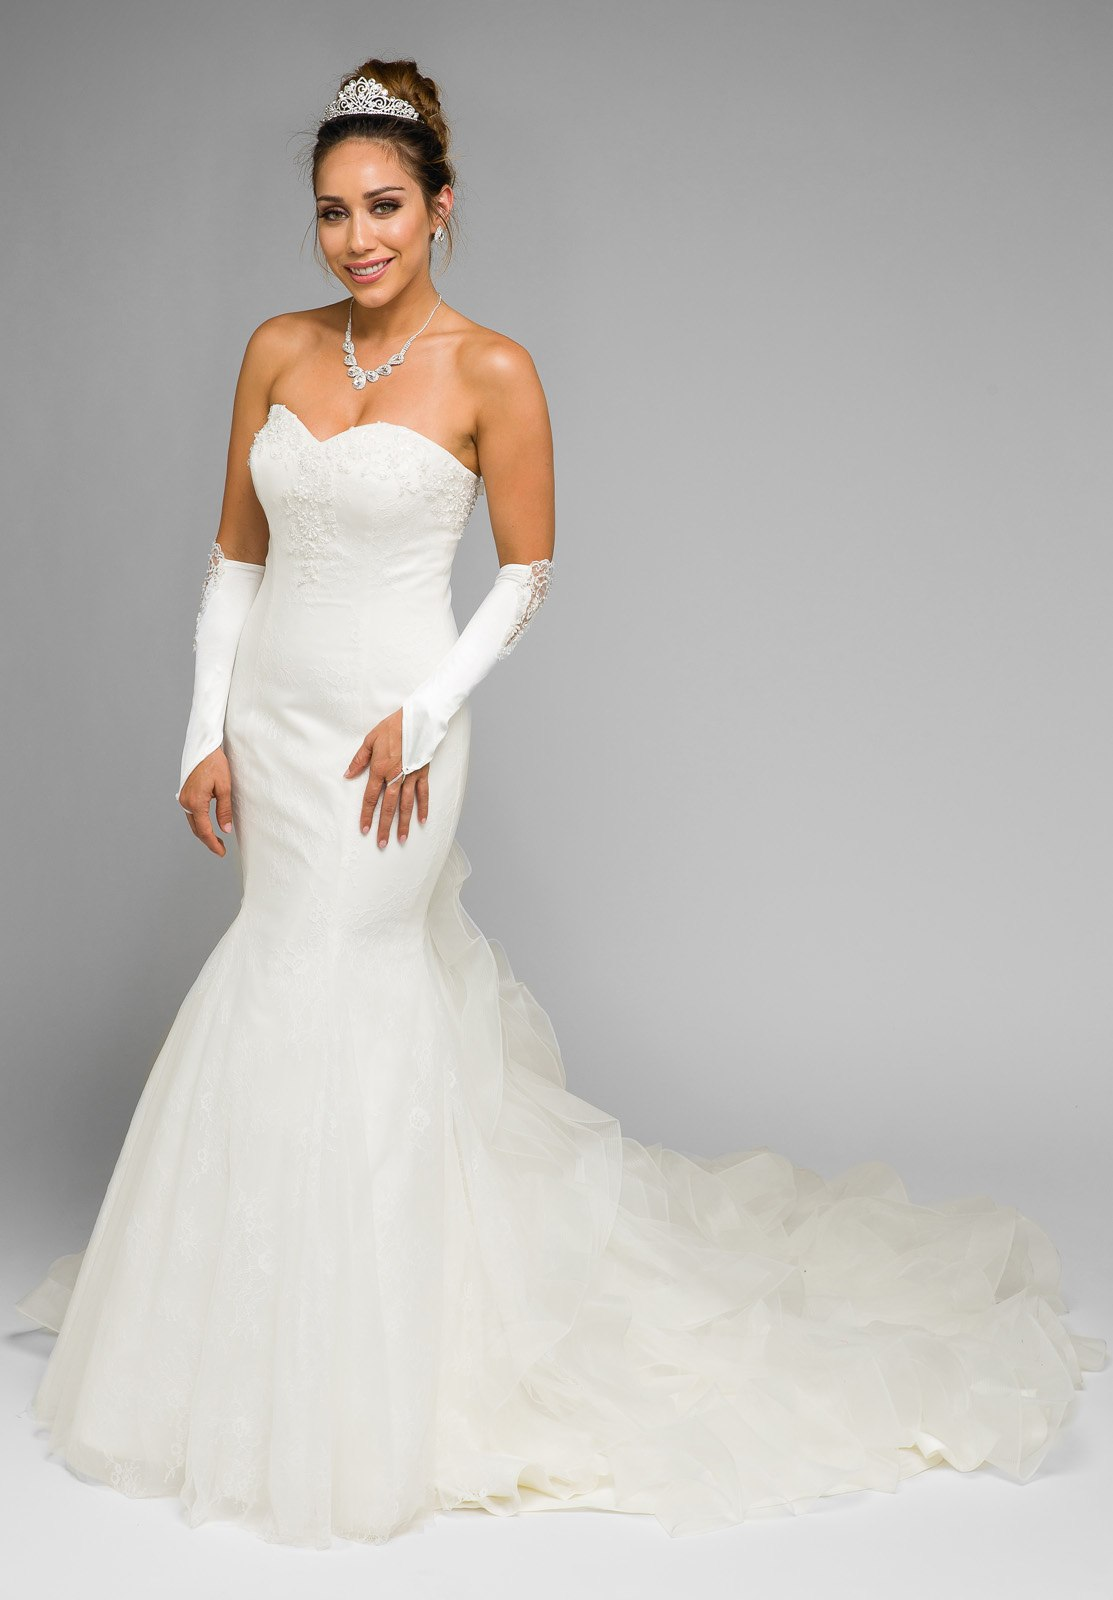 Ivory Strapless Mermaid Wedding Gown With Ruffled Chapel